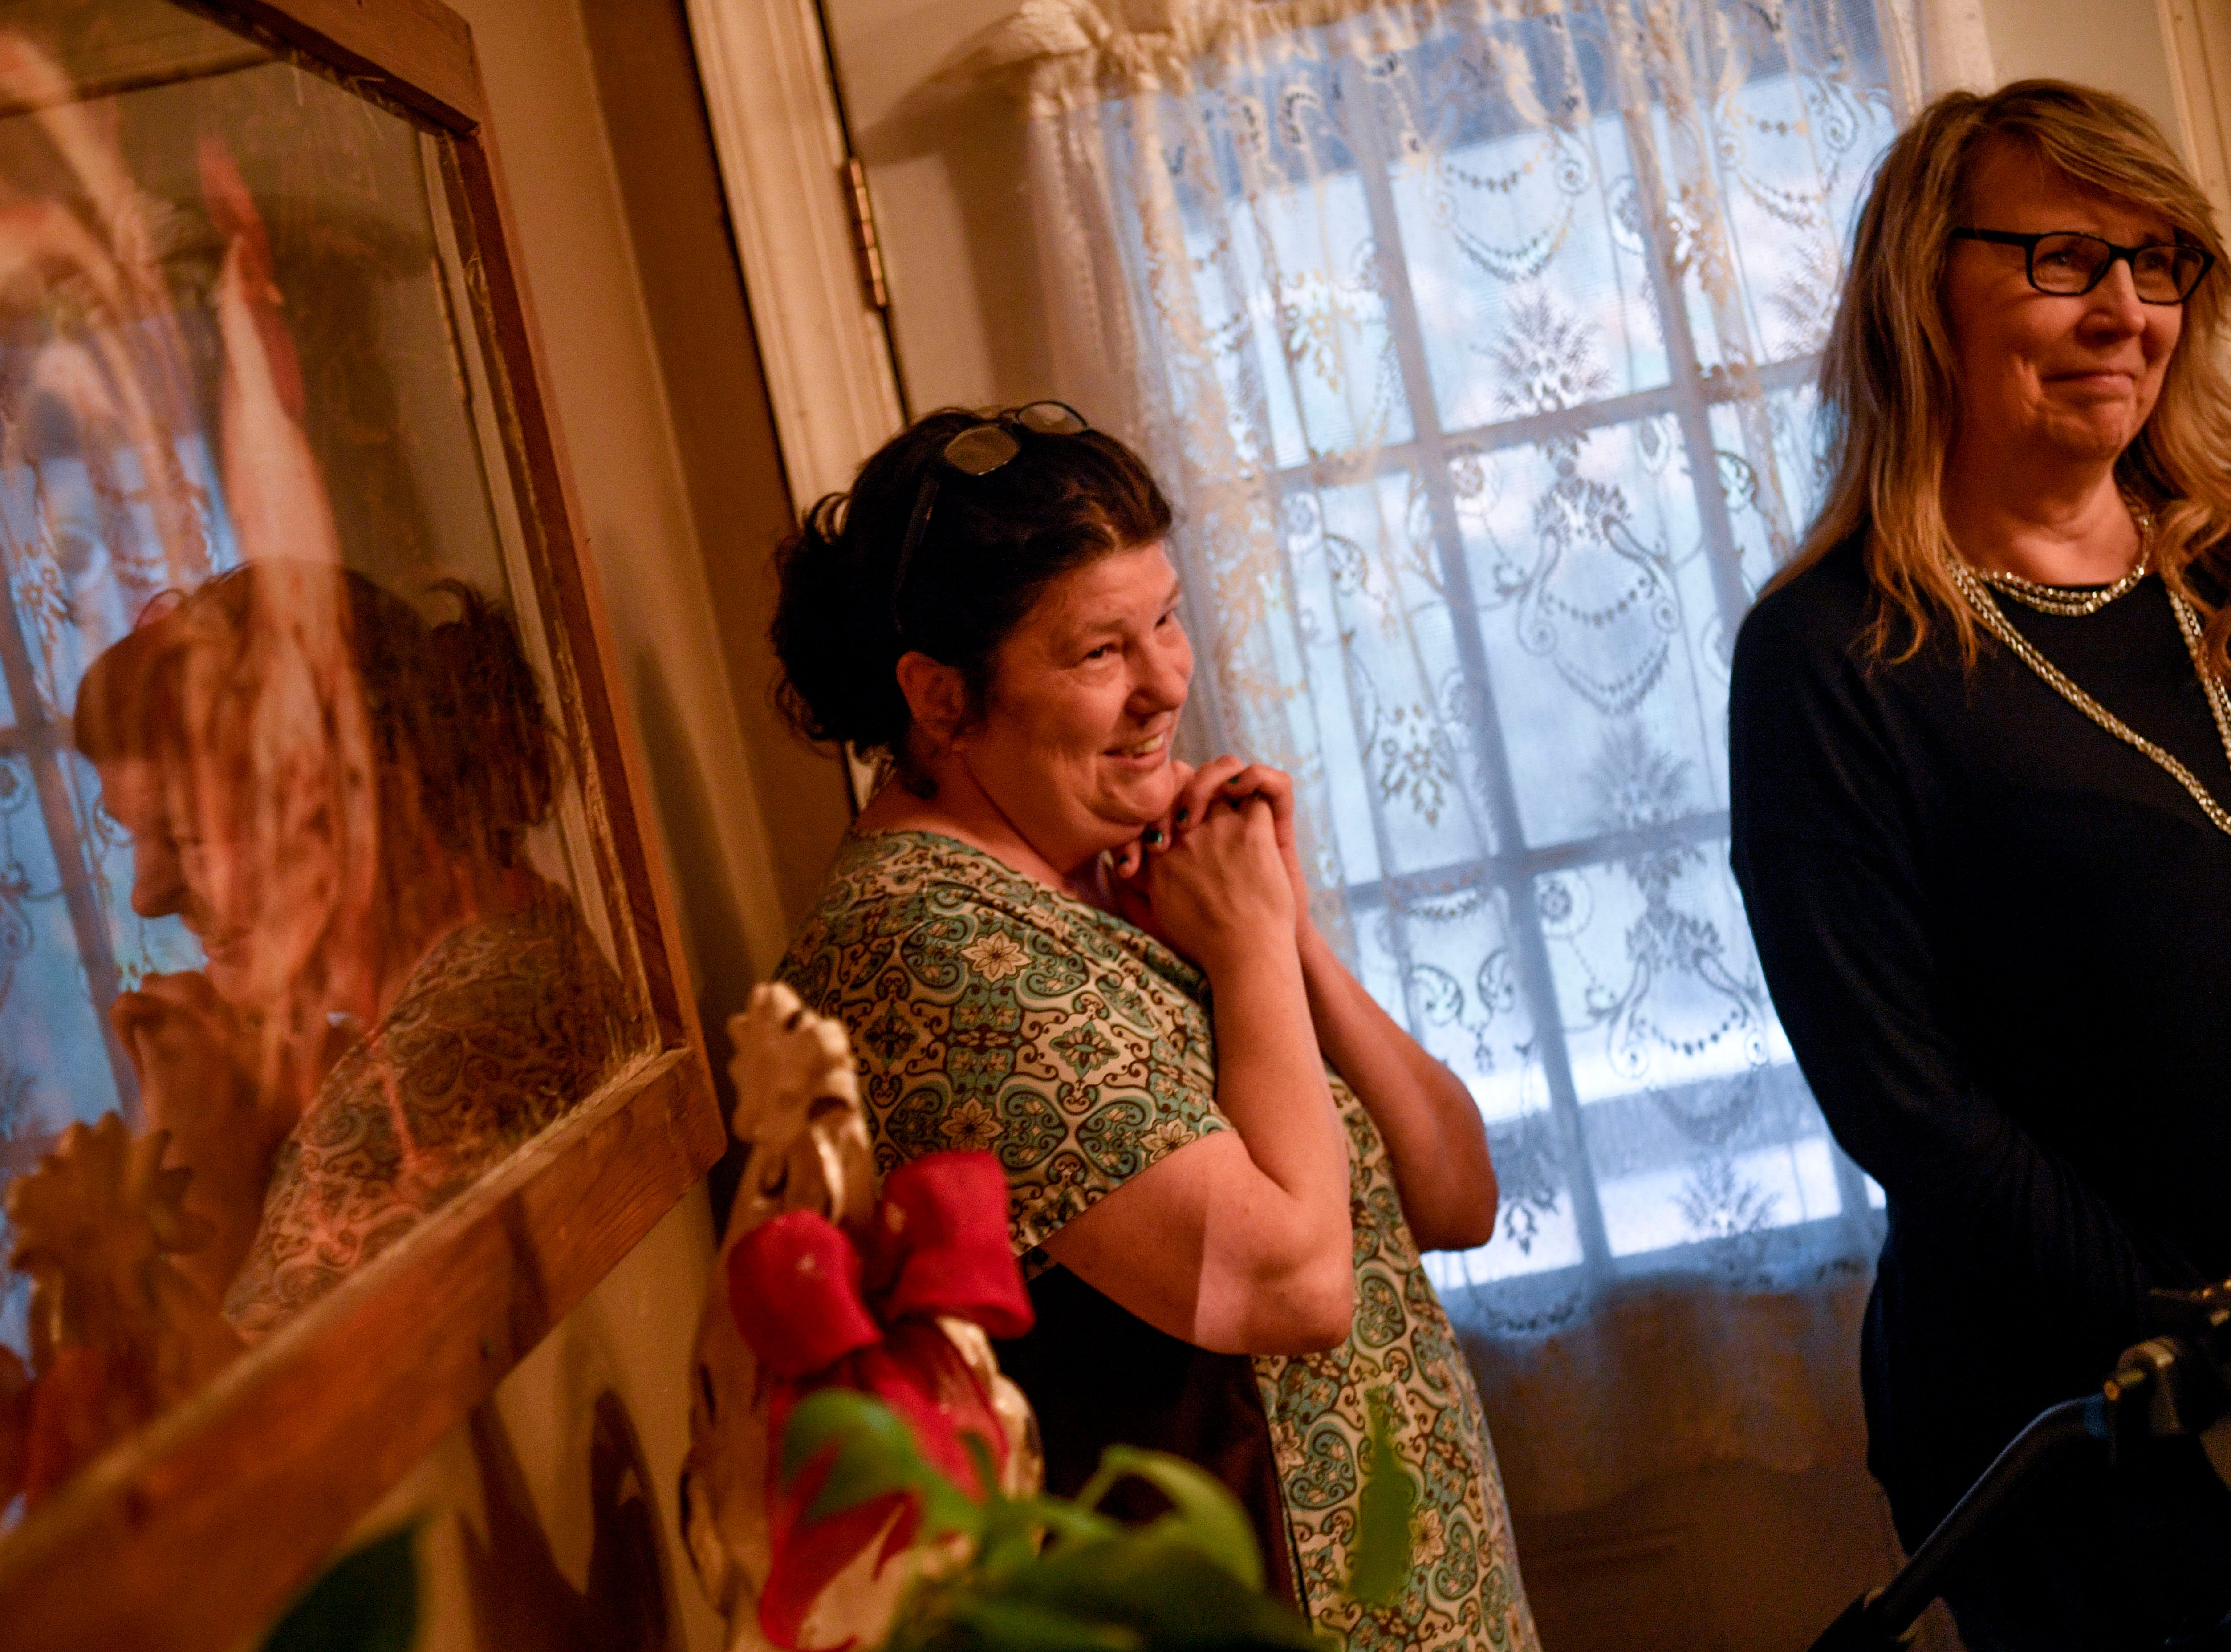 Barbara Elgamal, Zachary Butler's caregiver, and Nancy Hunt, Butler's aunt, smile and watch on as Butler plays poker with Elvis at Butler's home in Trezevant, Tenn., on Wednesday, Jan. 23, 2019.